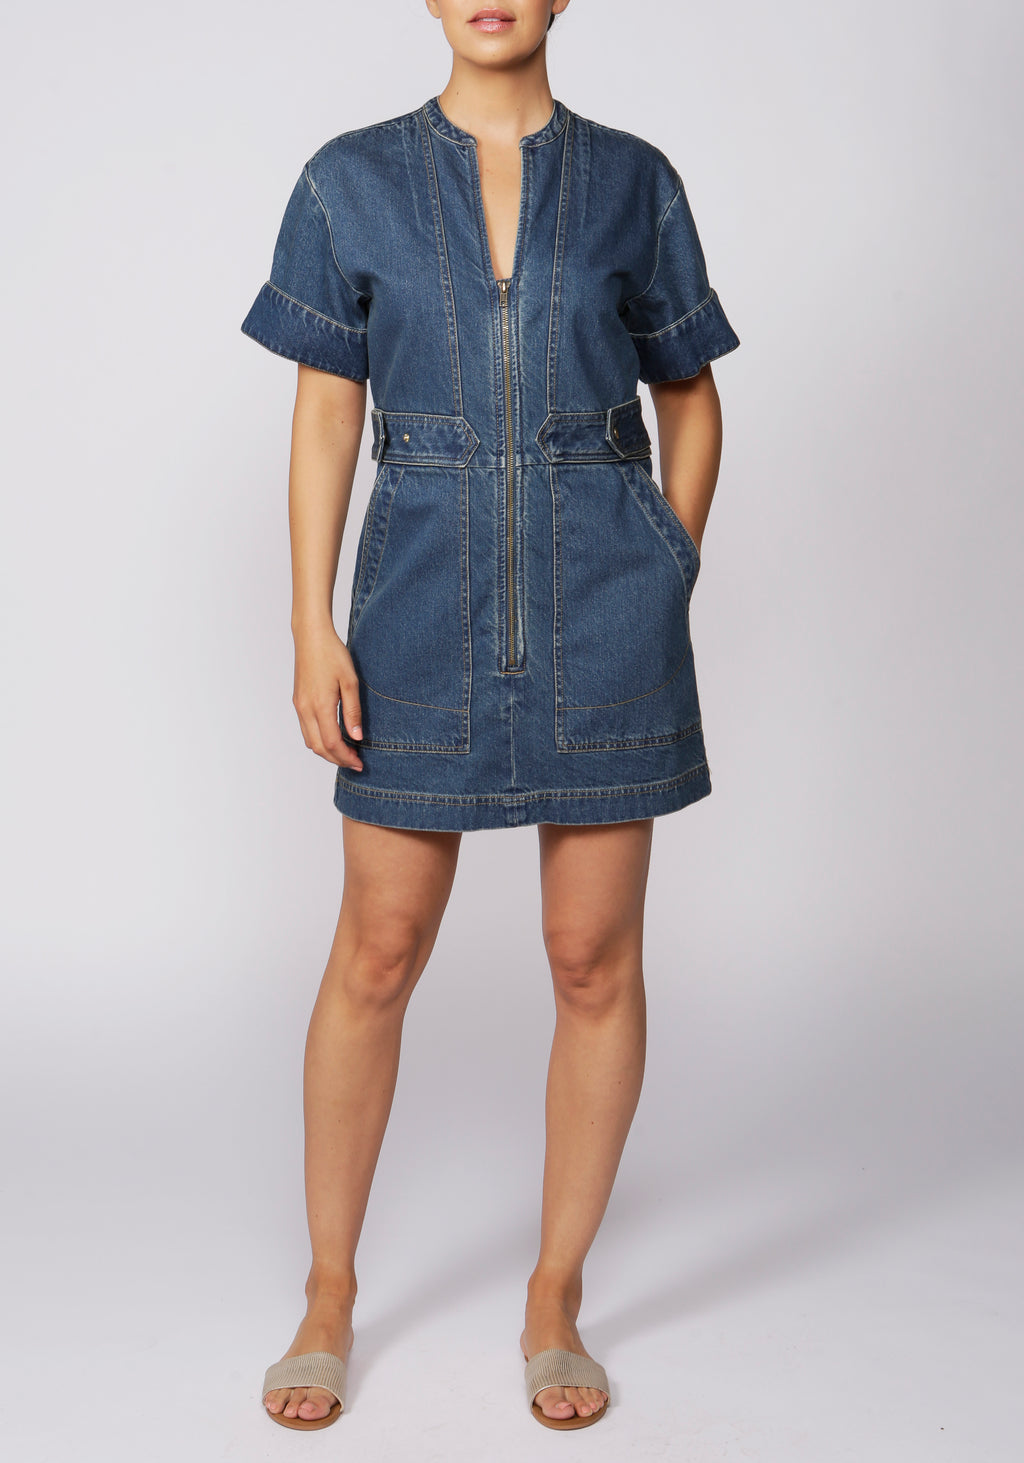 Free People Dream On Denim Mini